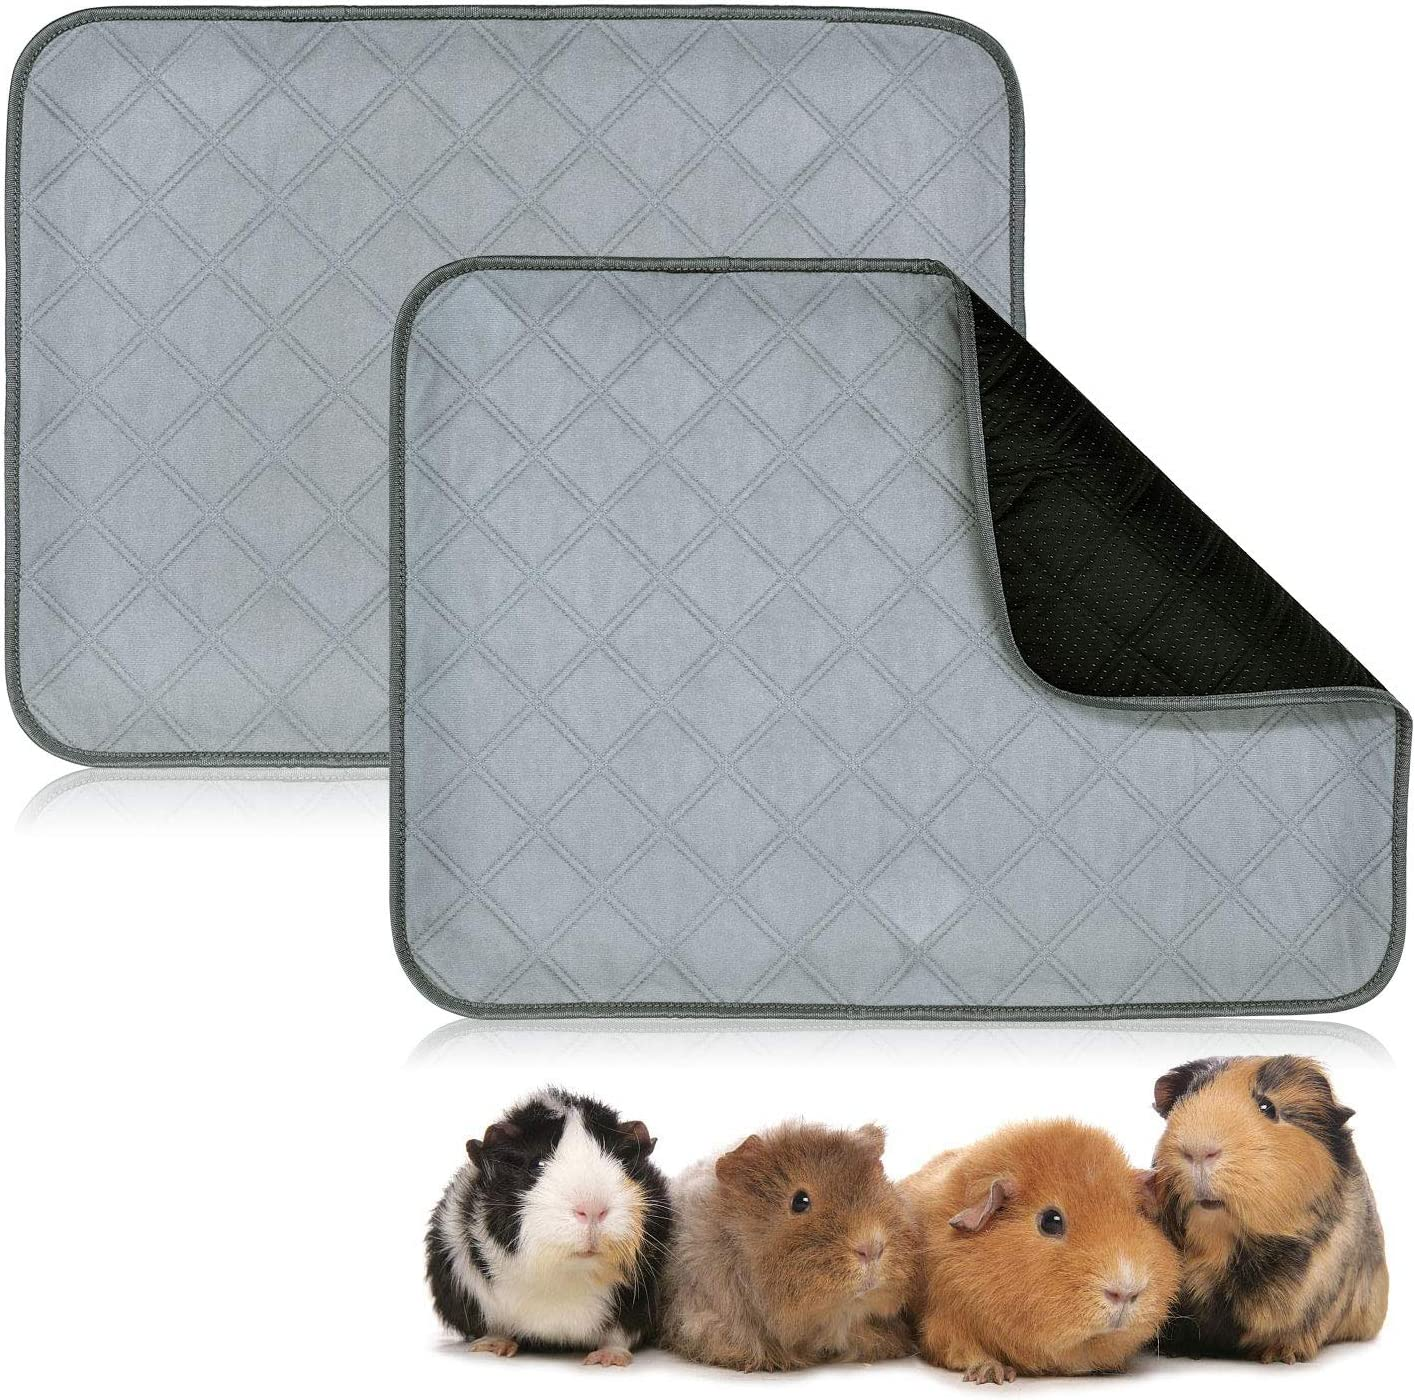 Waterproof Anti-Shrink Design Cute Blue paws Guinea Pig Fleece Cage Liner Custom Sizes Offered Handmade With Love For Guinea Pigs